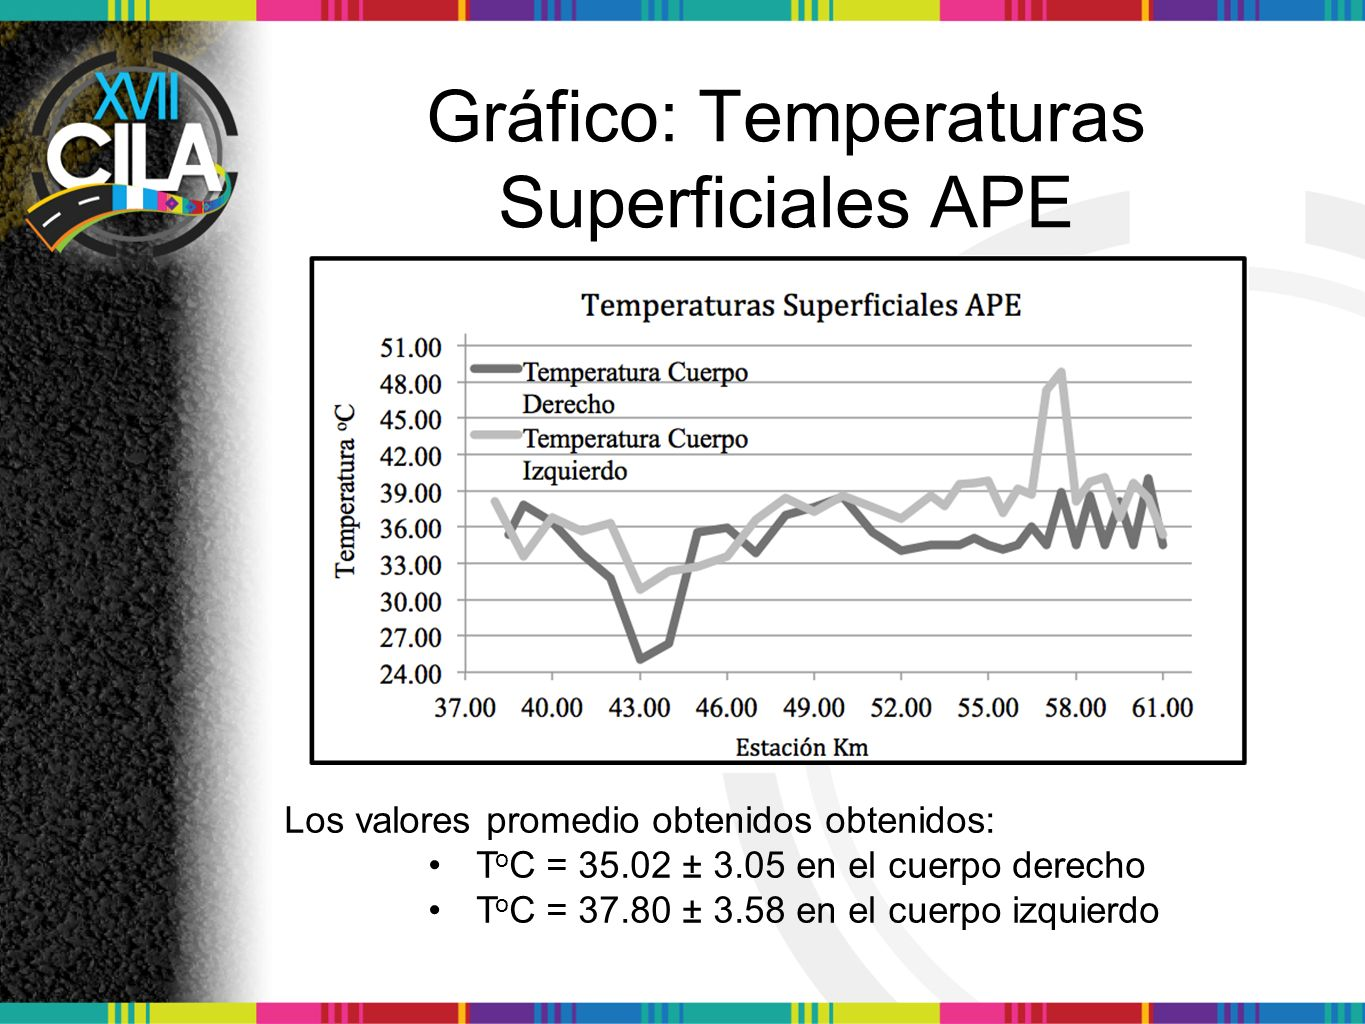 Gráfico: Temperaturas Superficiales APE